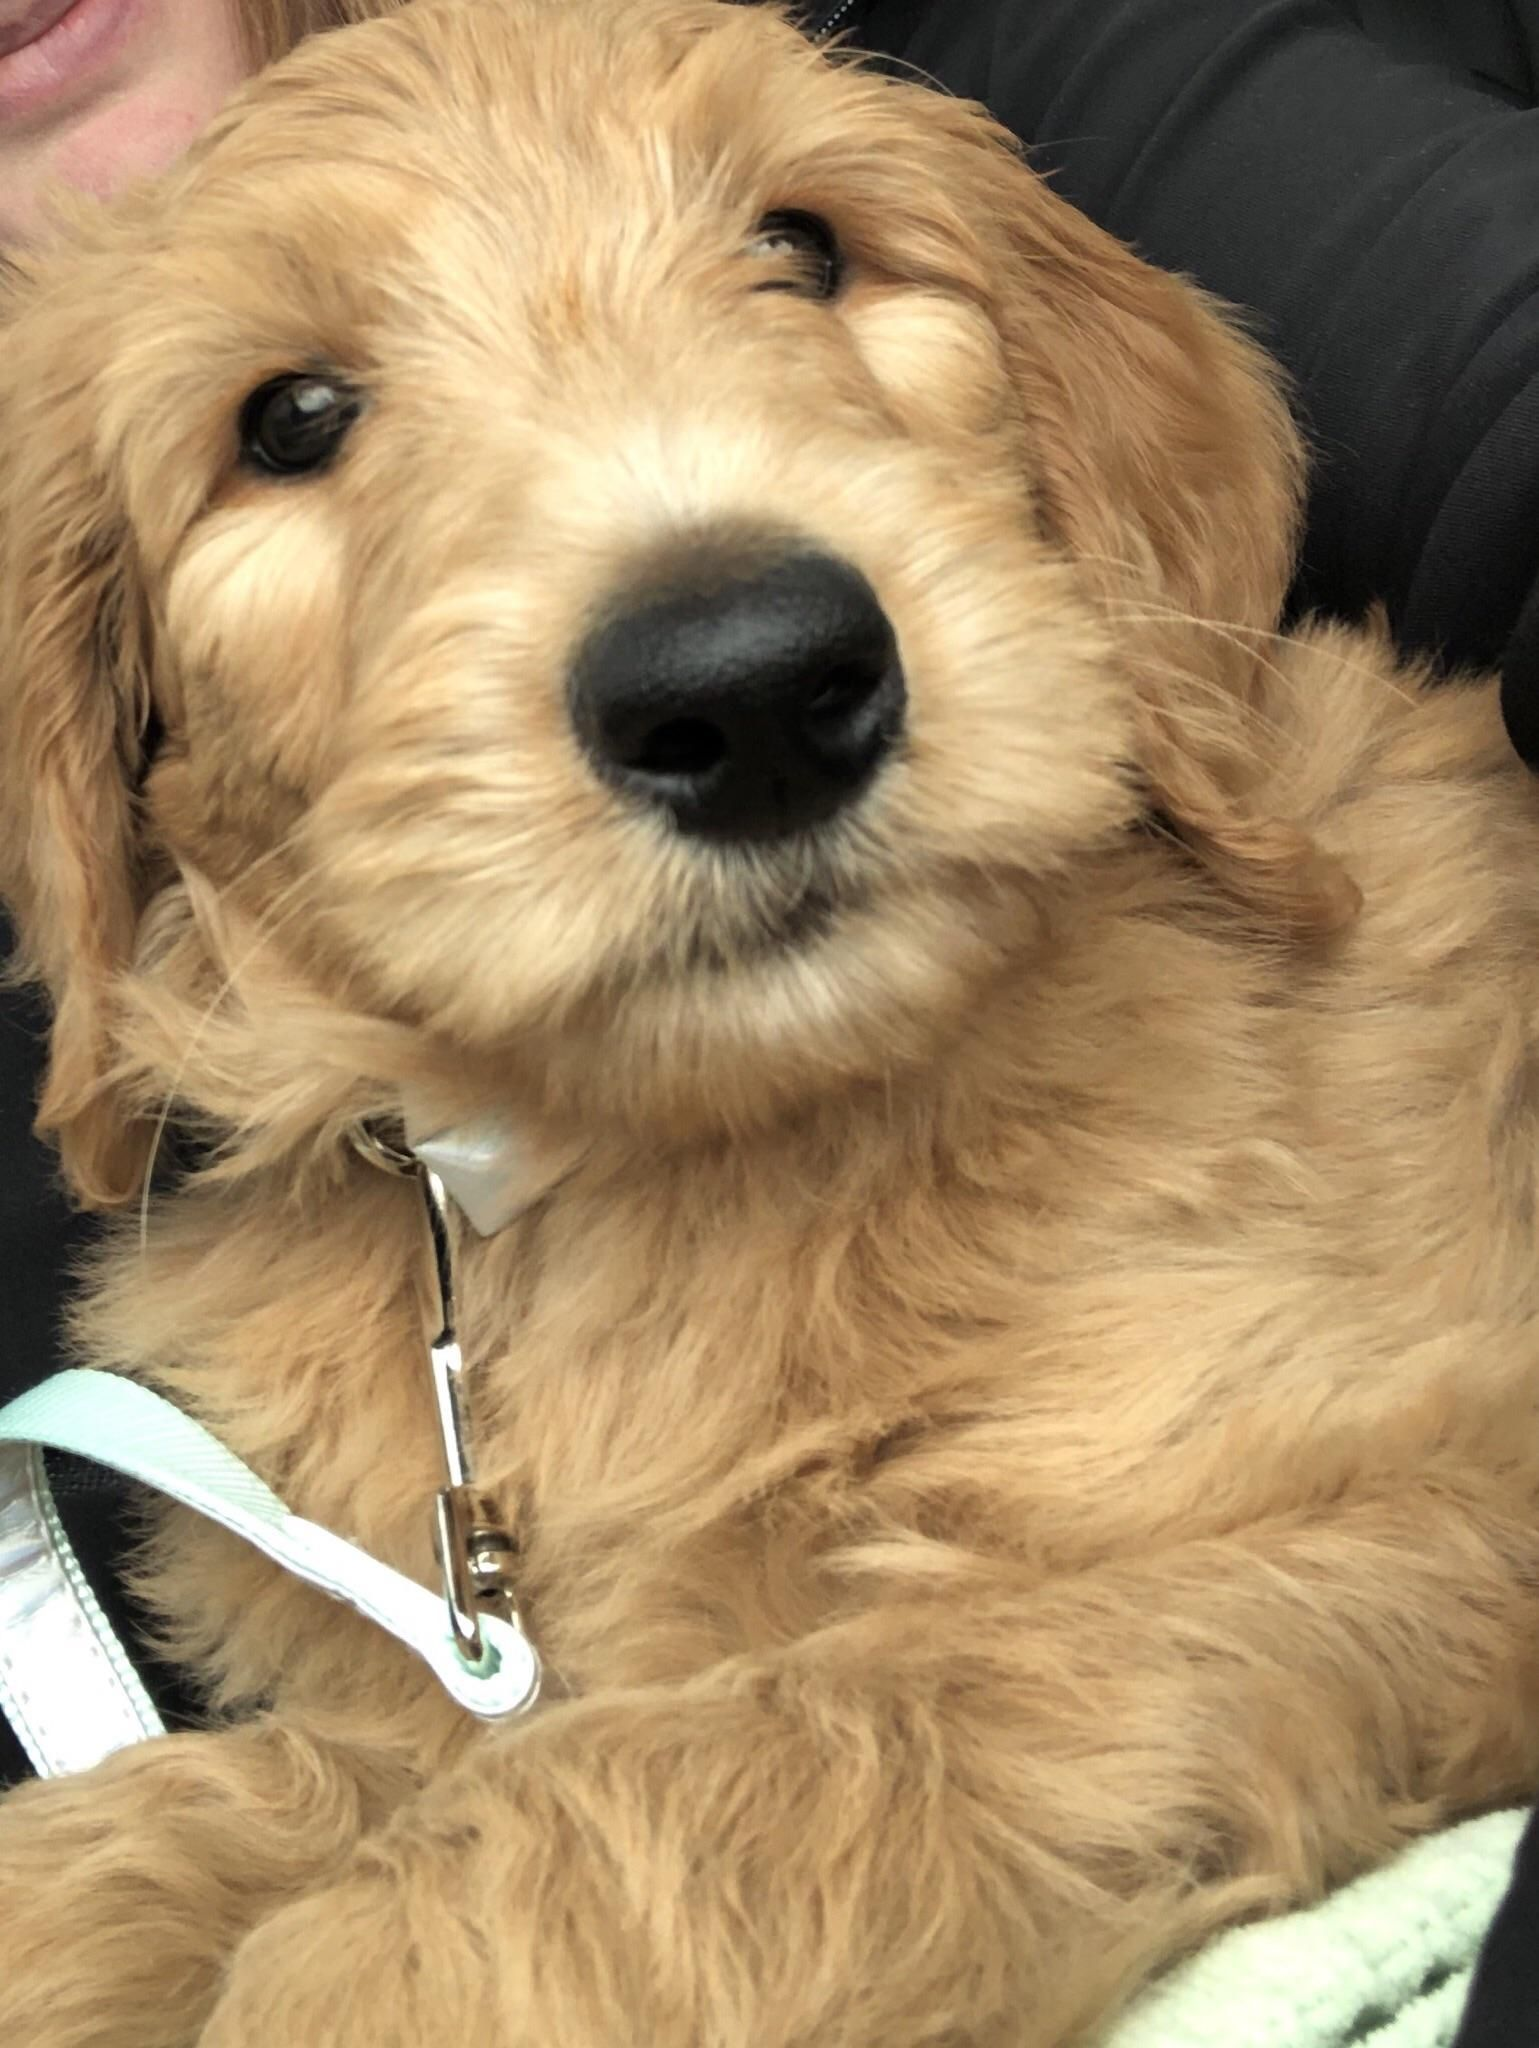 Reddit Meet Piper The Golden Doodle Puppy Aww Cute Animals Cats Dogs Goldendoodle Puppy Doodle Puppy Goldendoodle